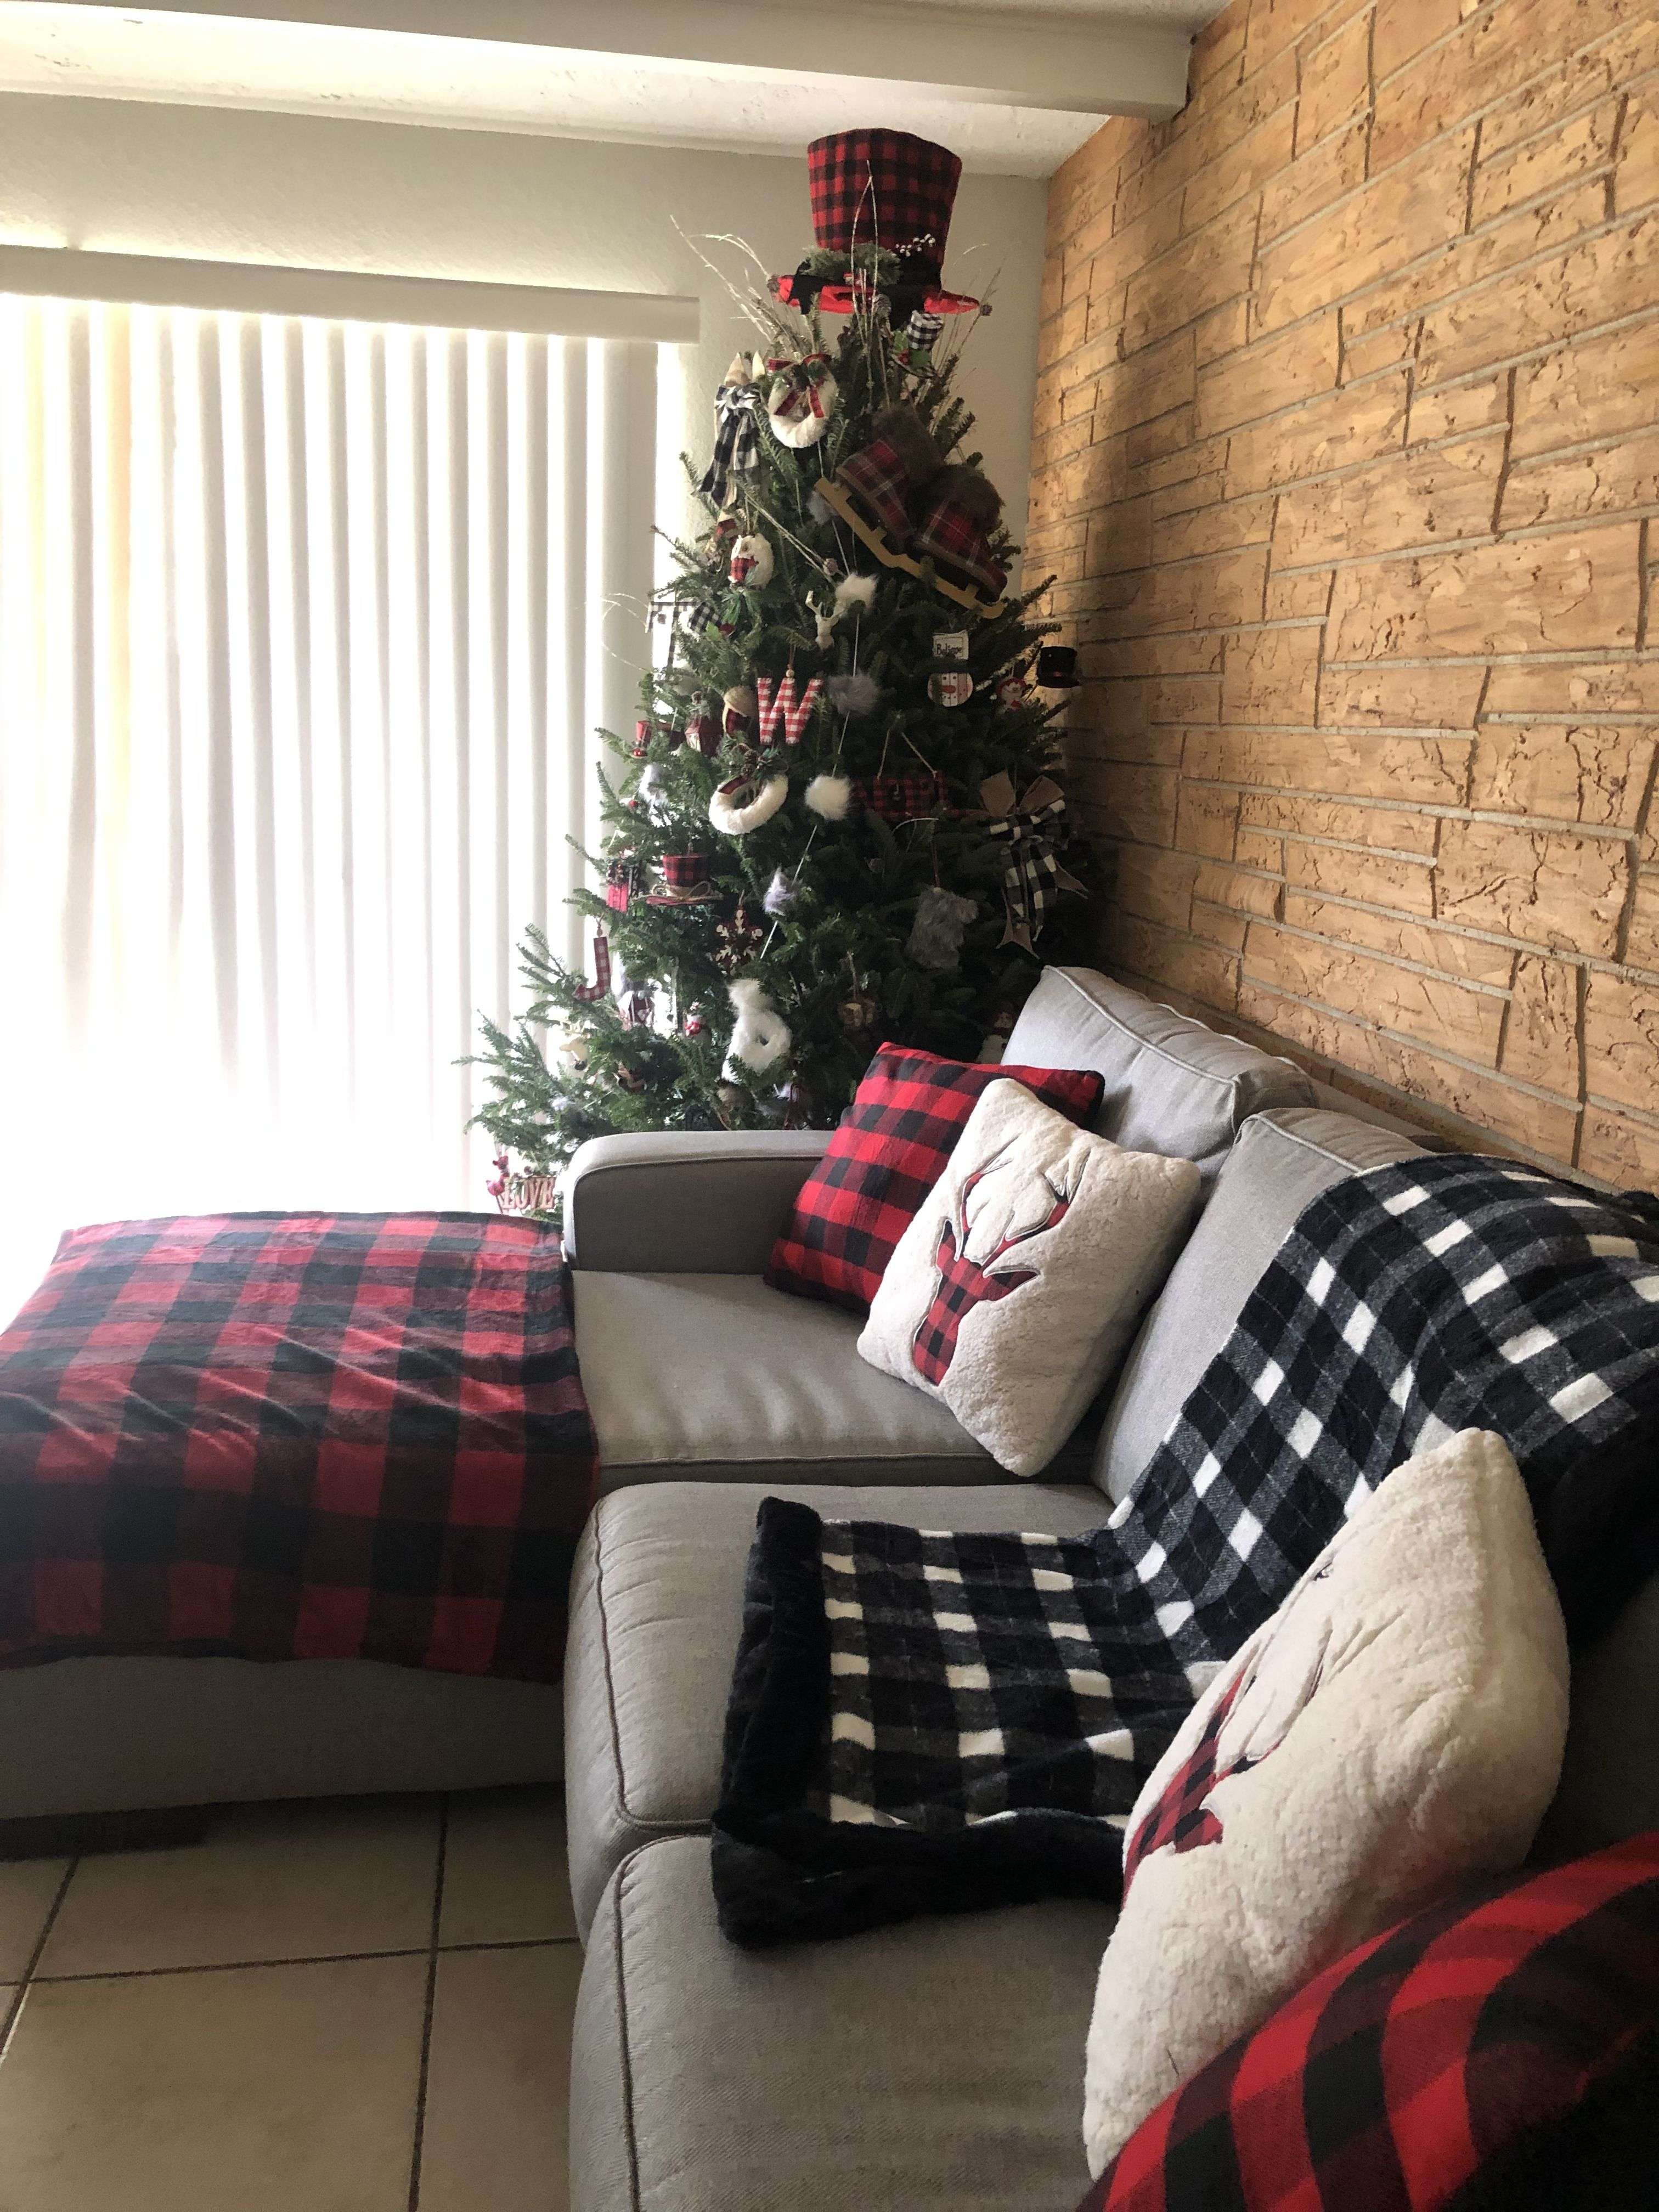 Buffalo Check Plaid Red And Black White And Black Country Style Christmas Tree Living Room Decoration Fo Living Room Decor Holiday Decor Christmas Tree #red #buffalo #plaid #living #room